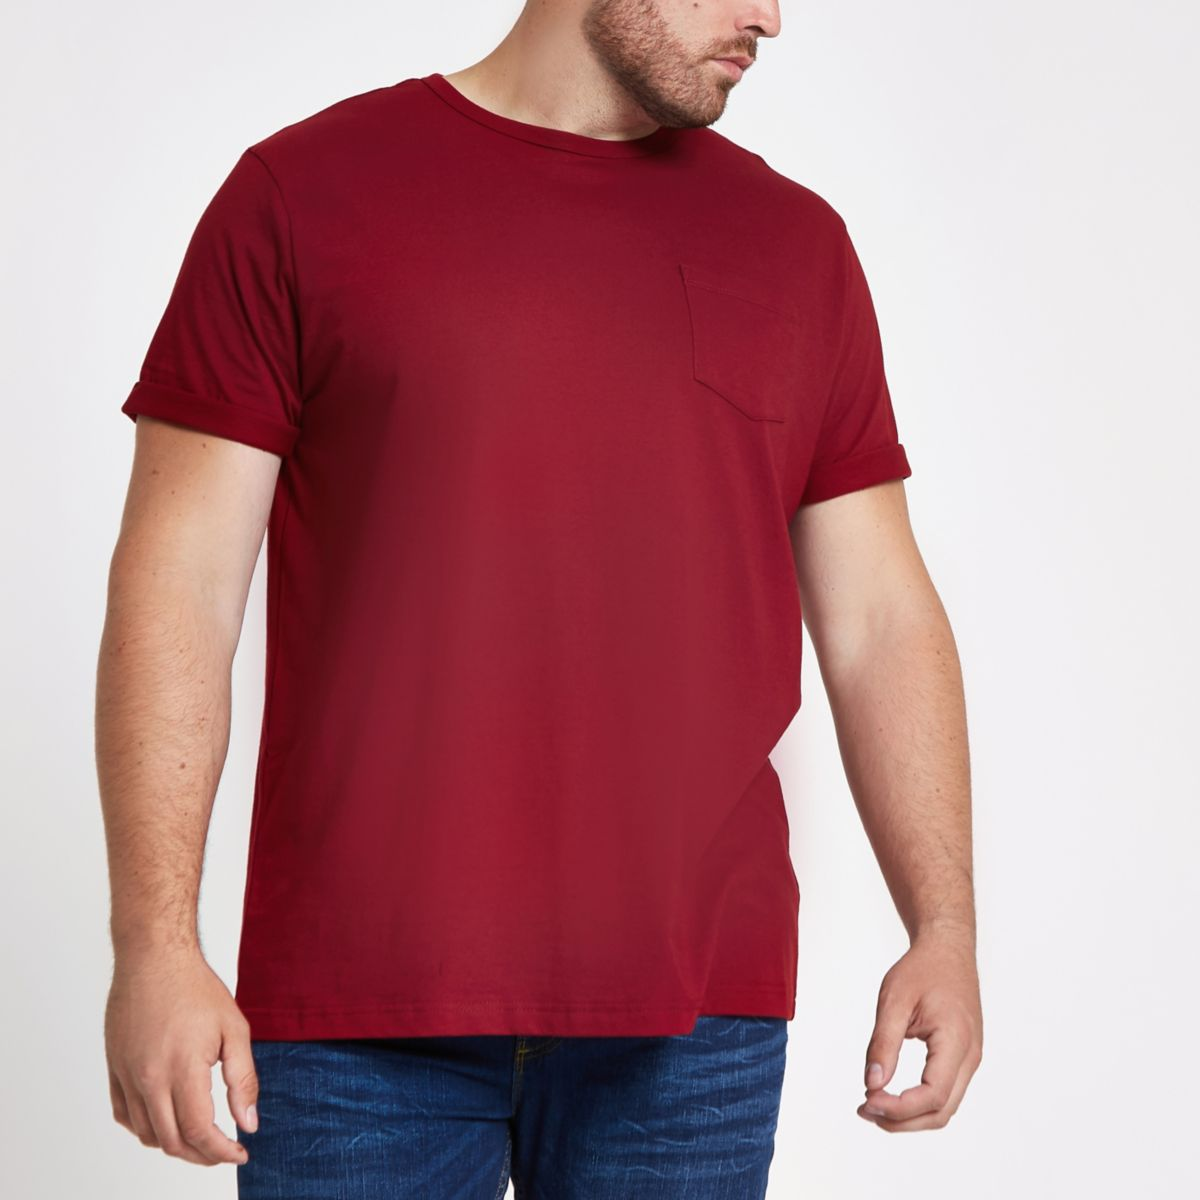 Big and Tall - Rood T-shirt met opgerolde mouwen